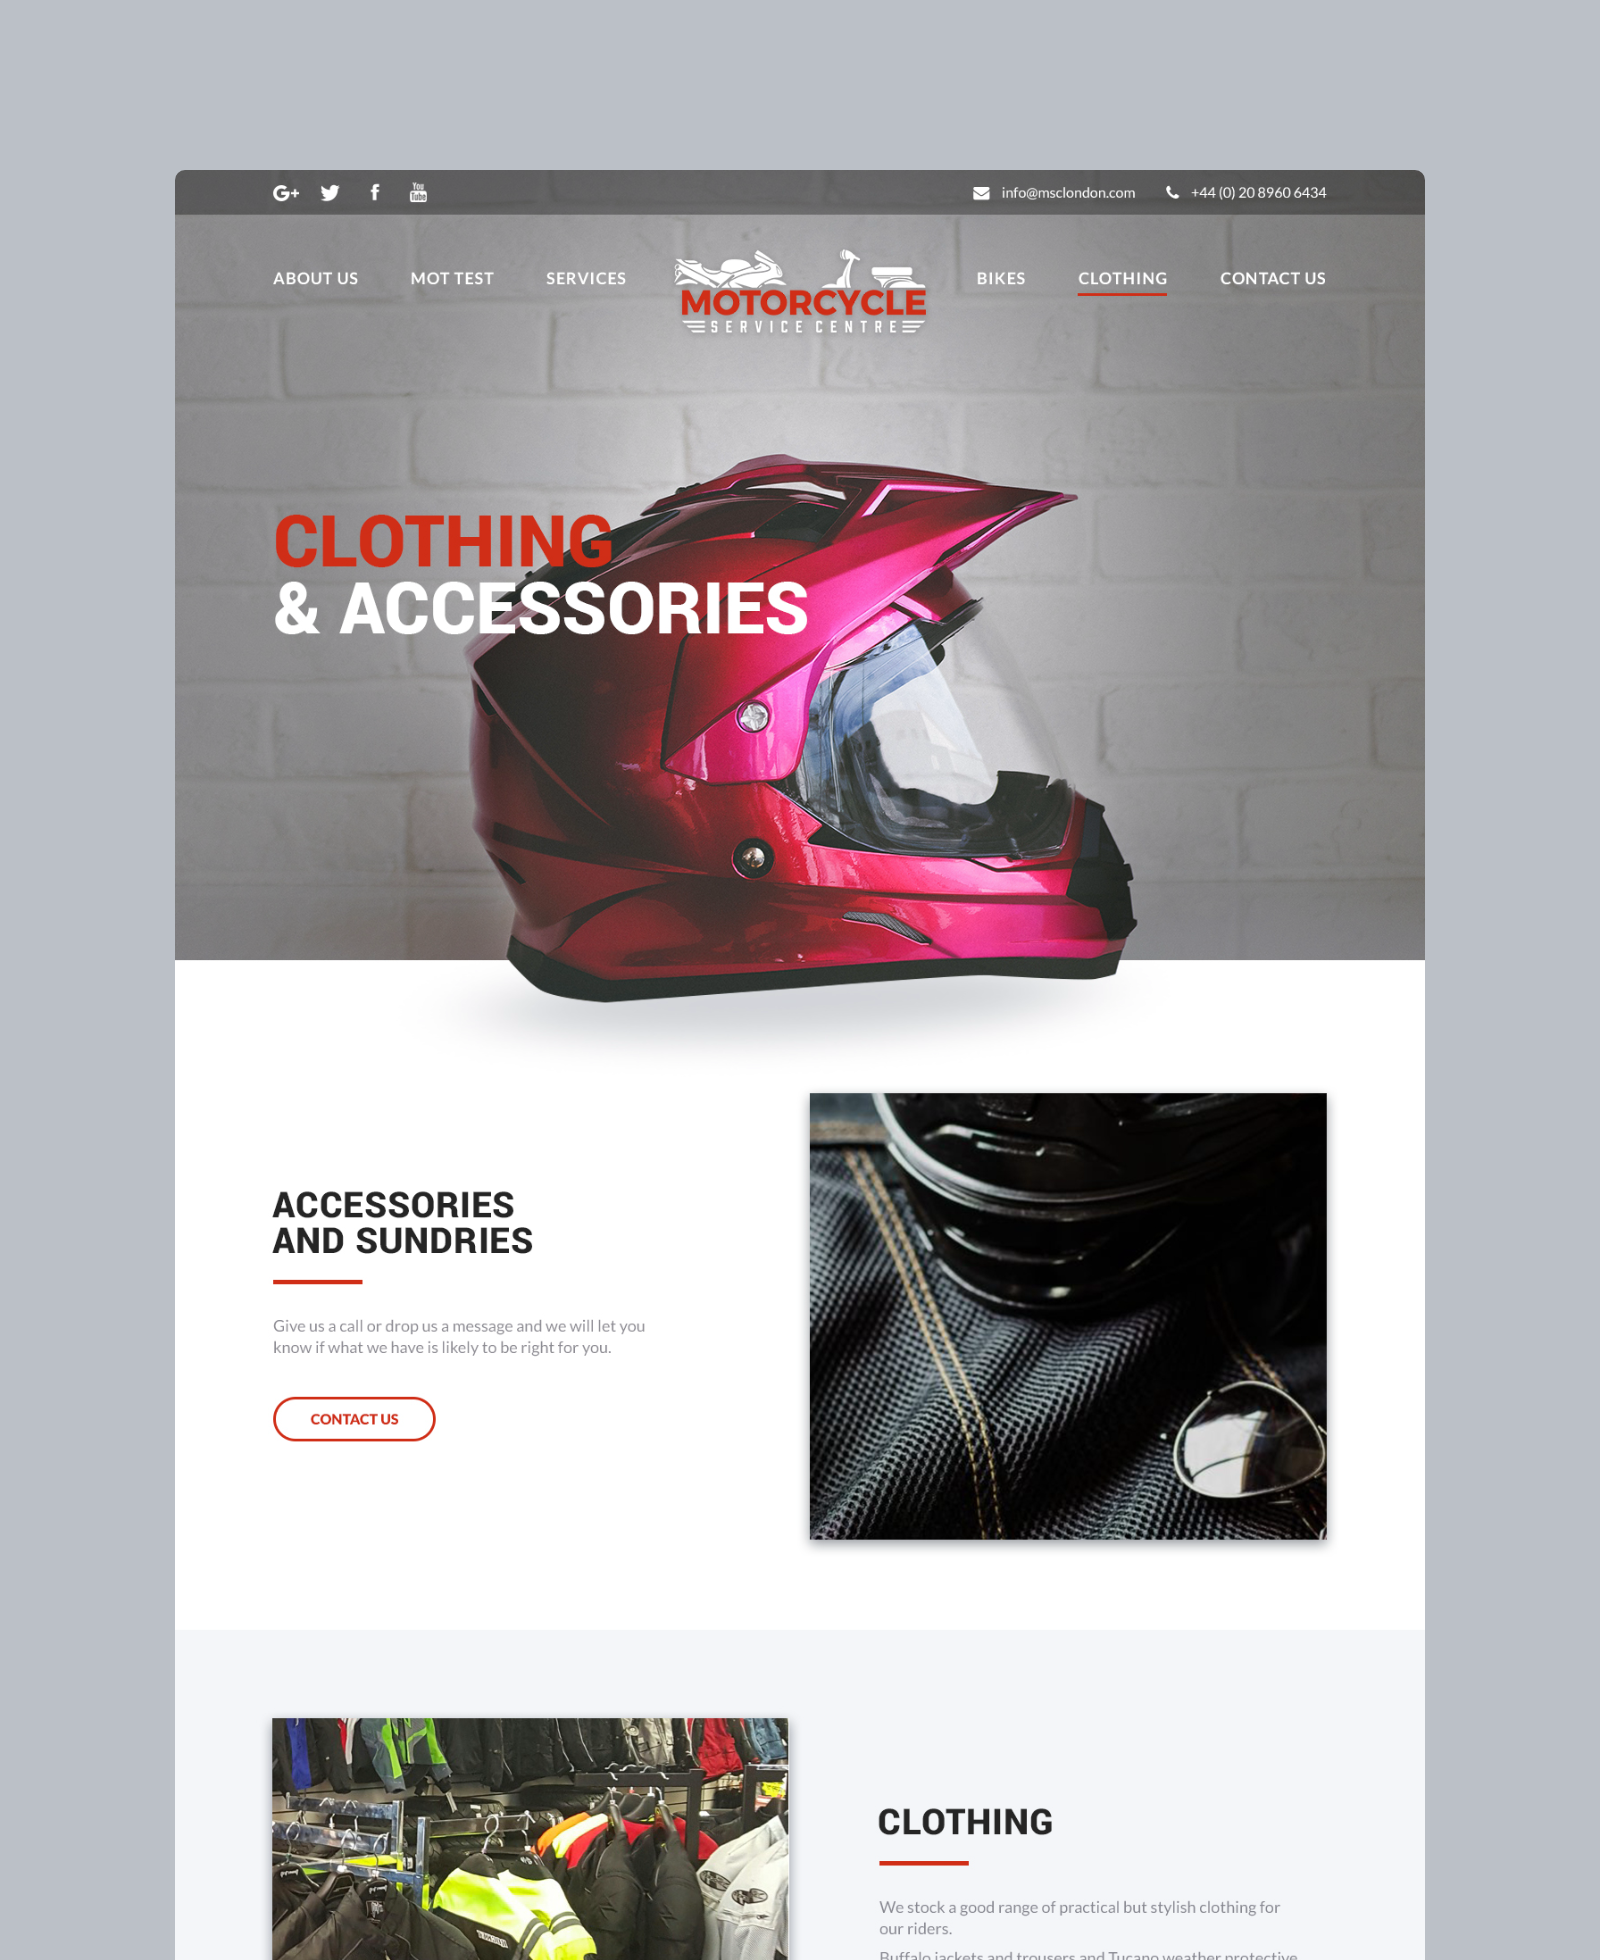 Motorcycle Service Centre Accessories Page